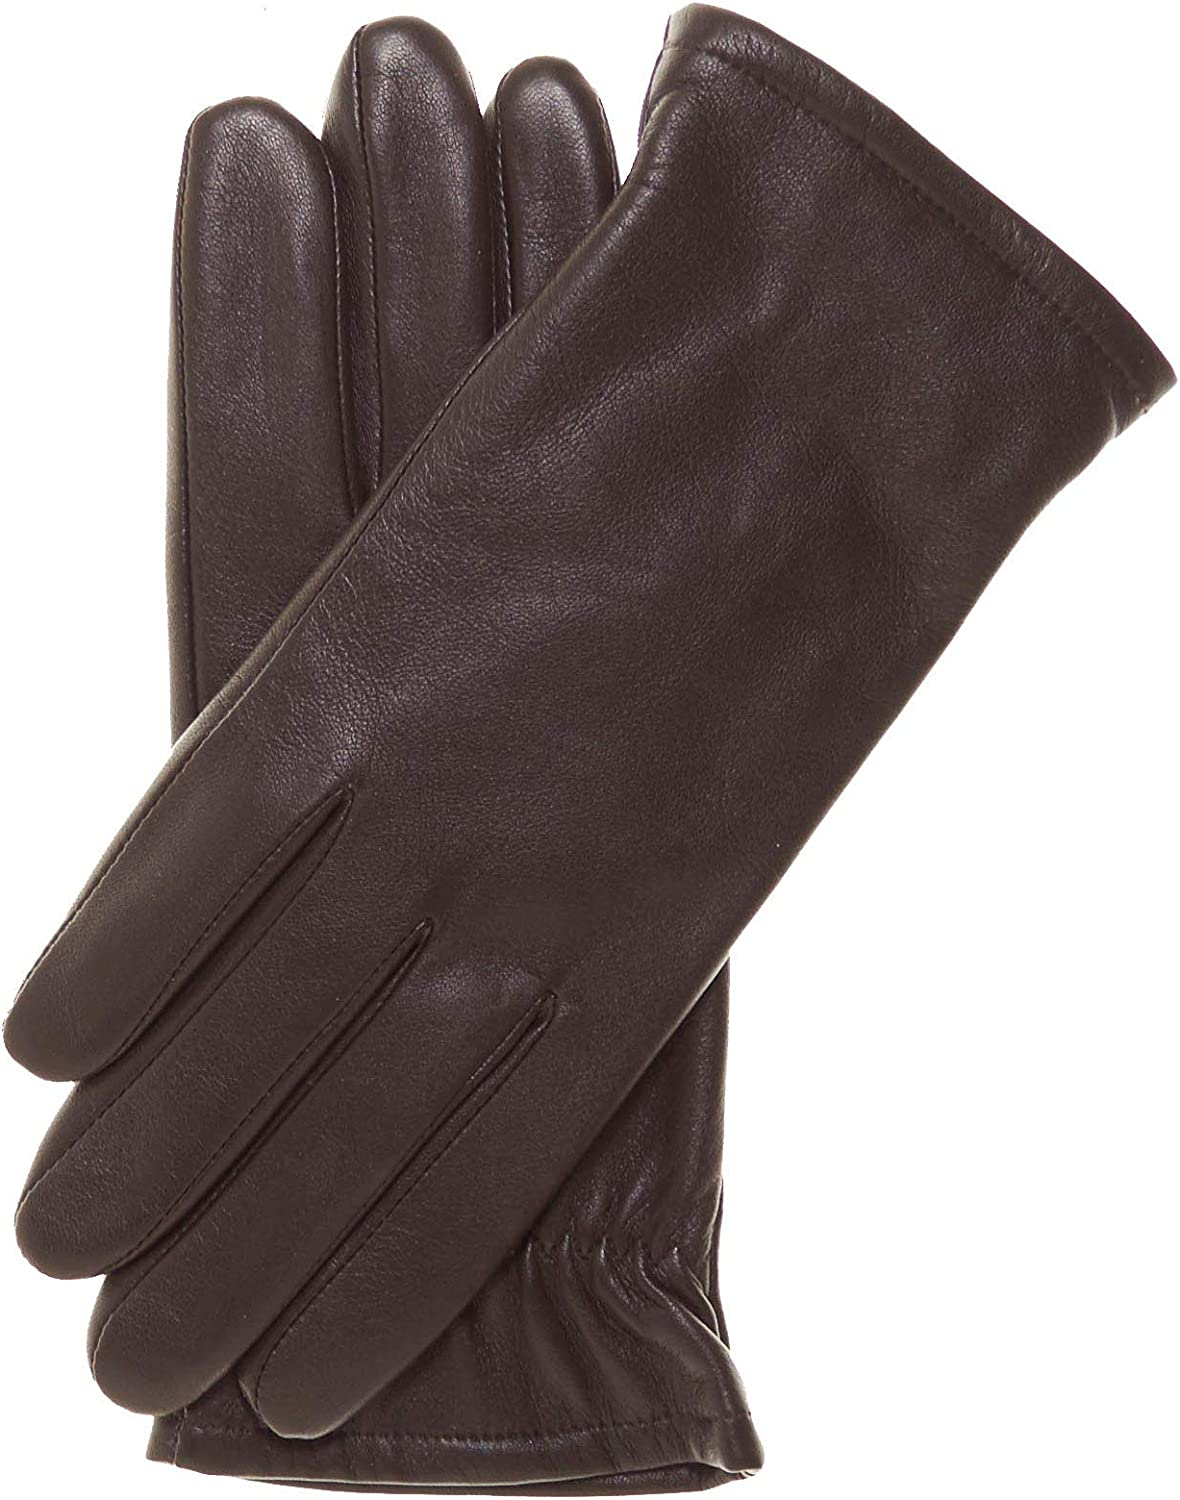 Broadway Lady's Classic Thinsulate Lined Leather Gloves by Pratt and Hart PH4564